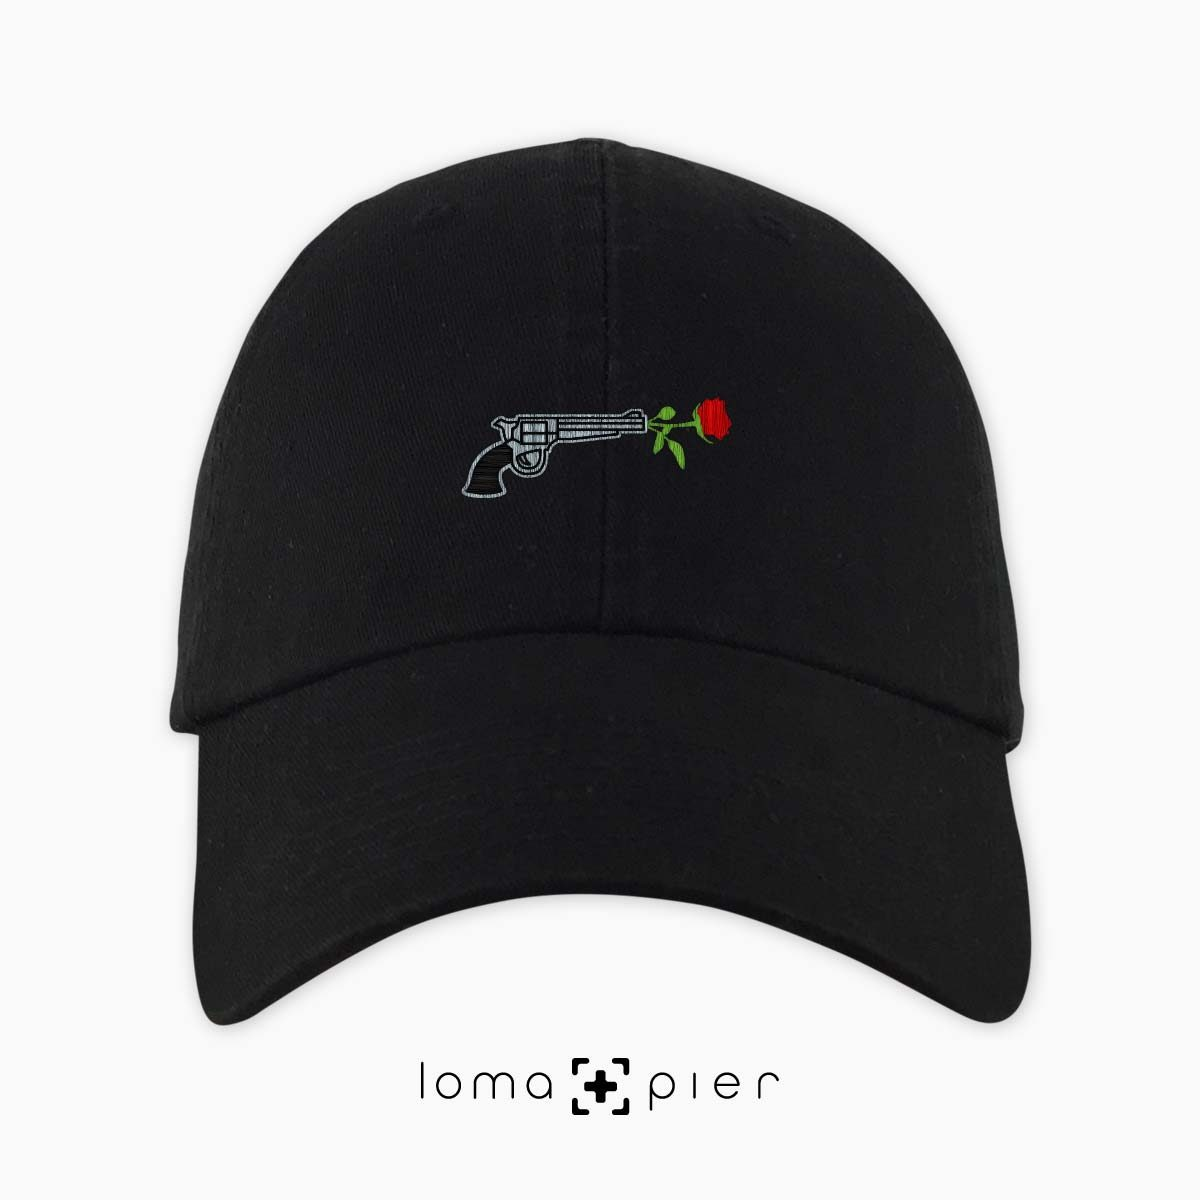 ROSE REVOLVER icon embroidered on a black unstructured dad hat with multicolor thread by loma+pier hat store made in the USA